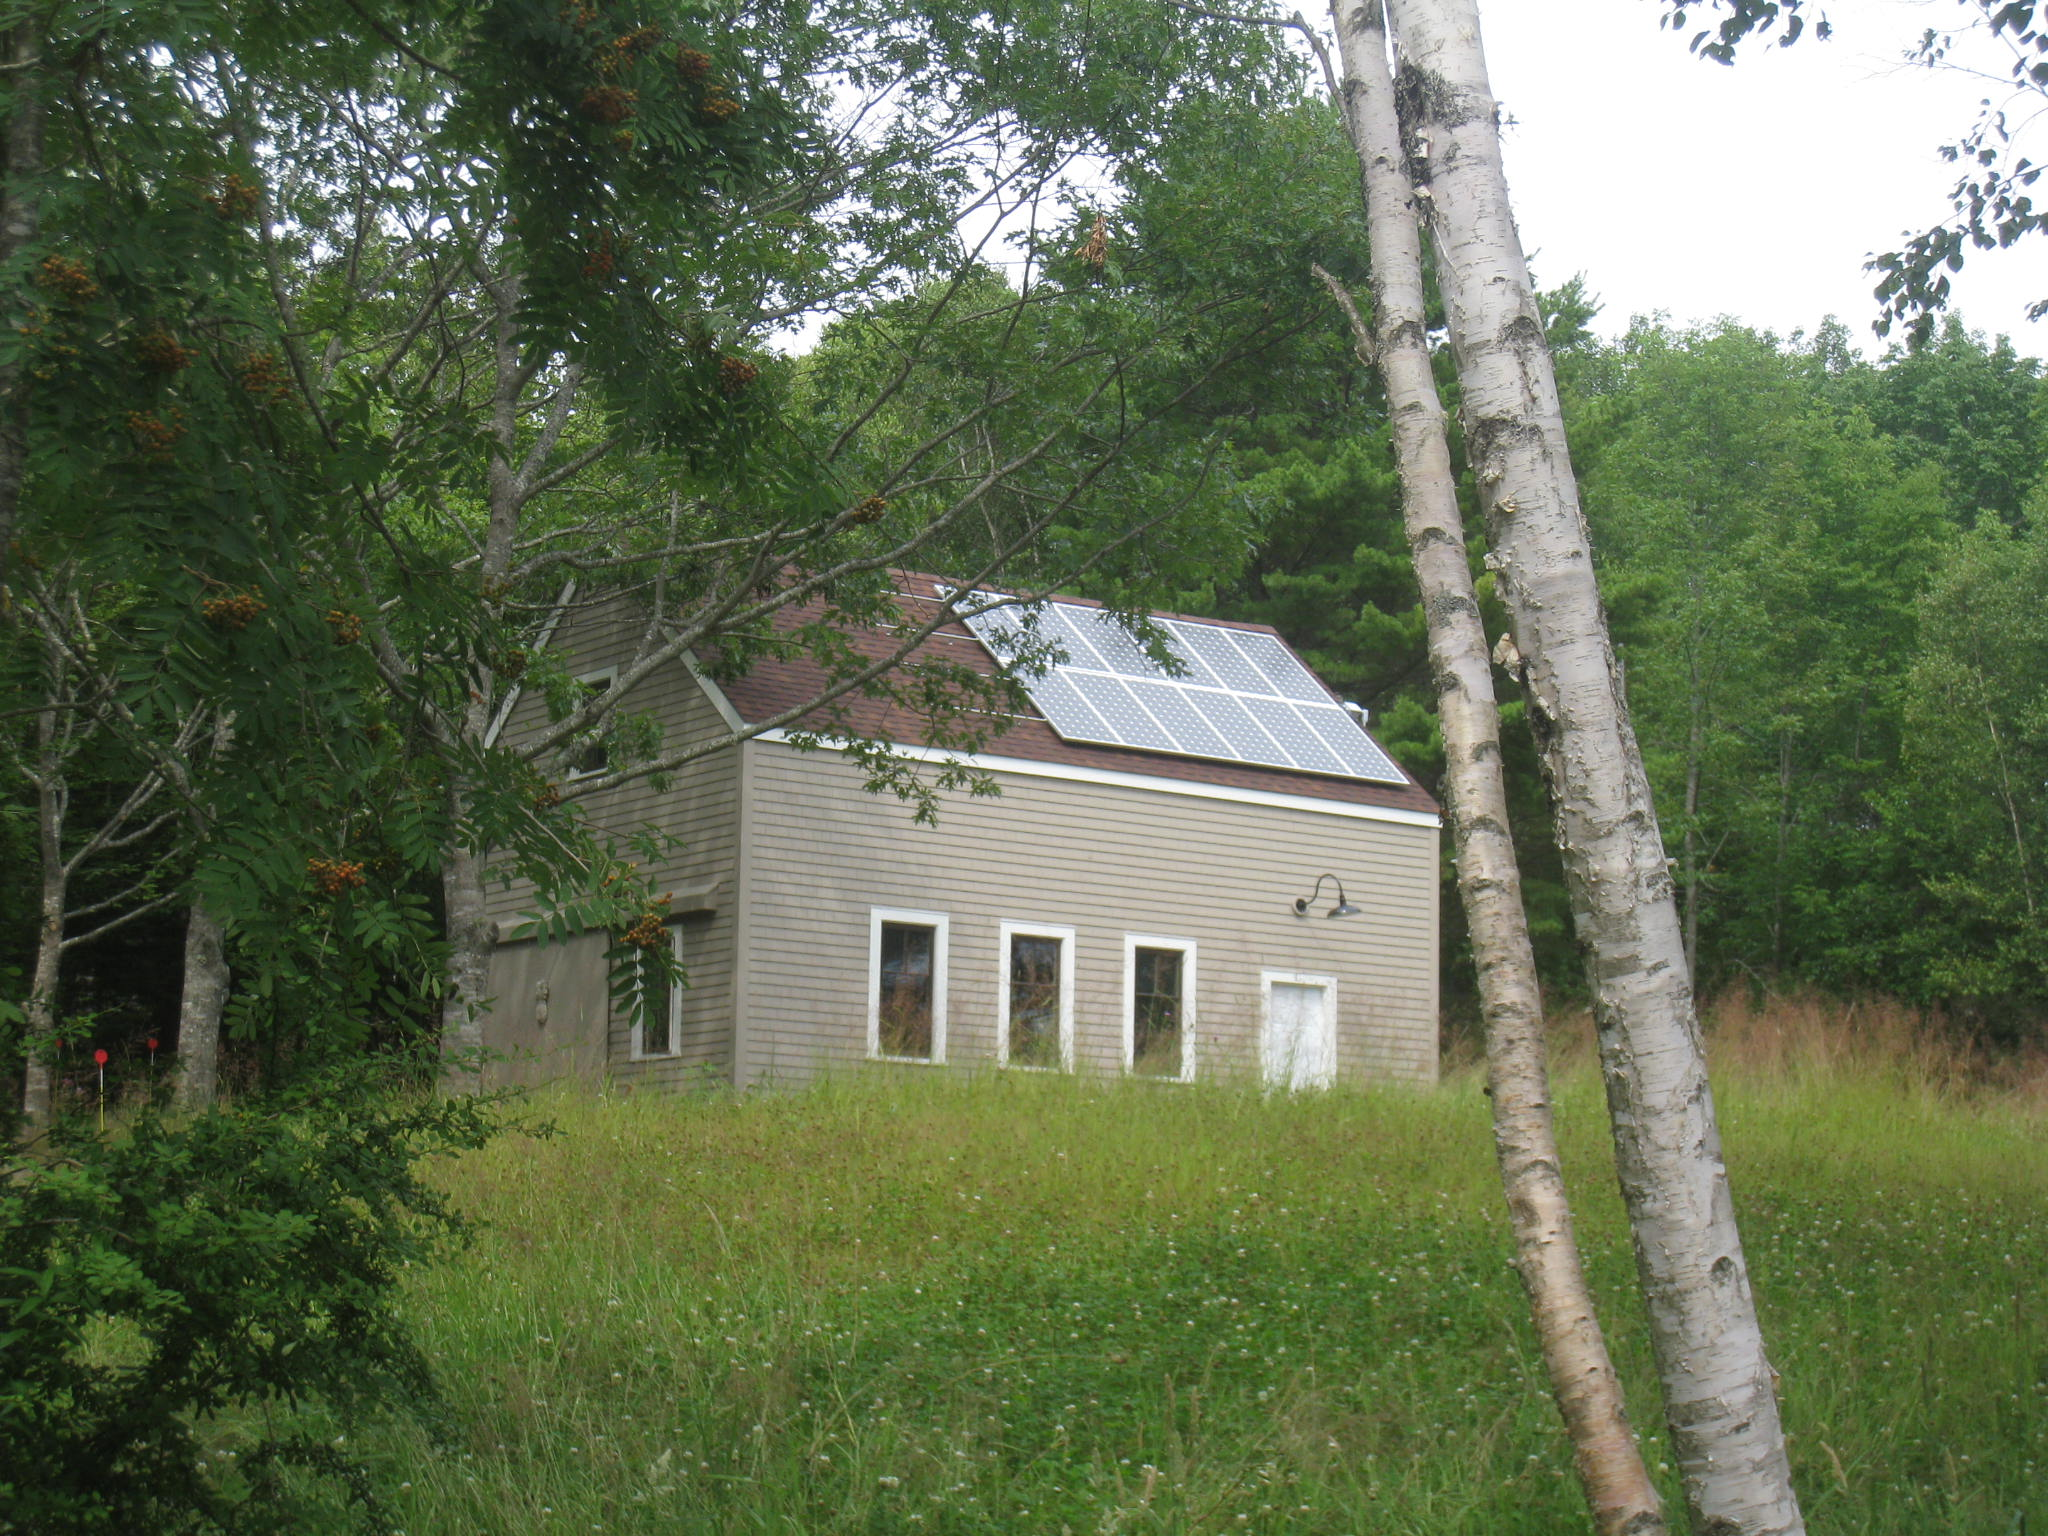 The PV system was placed on the garage where solar exposure was ideal.